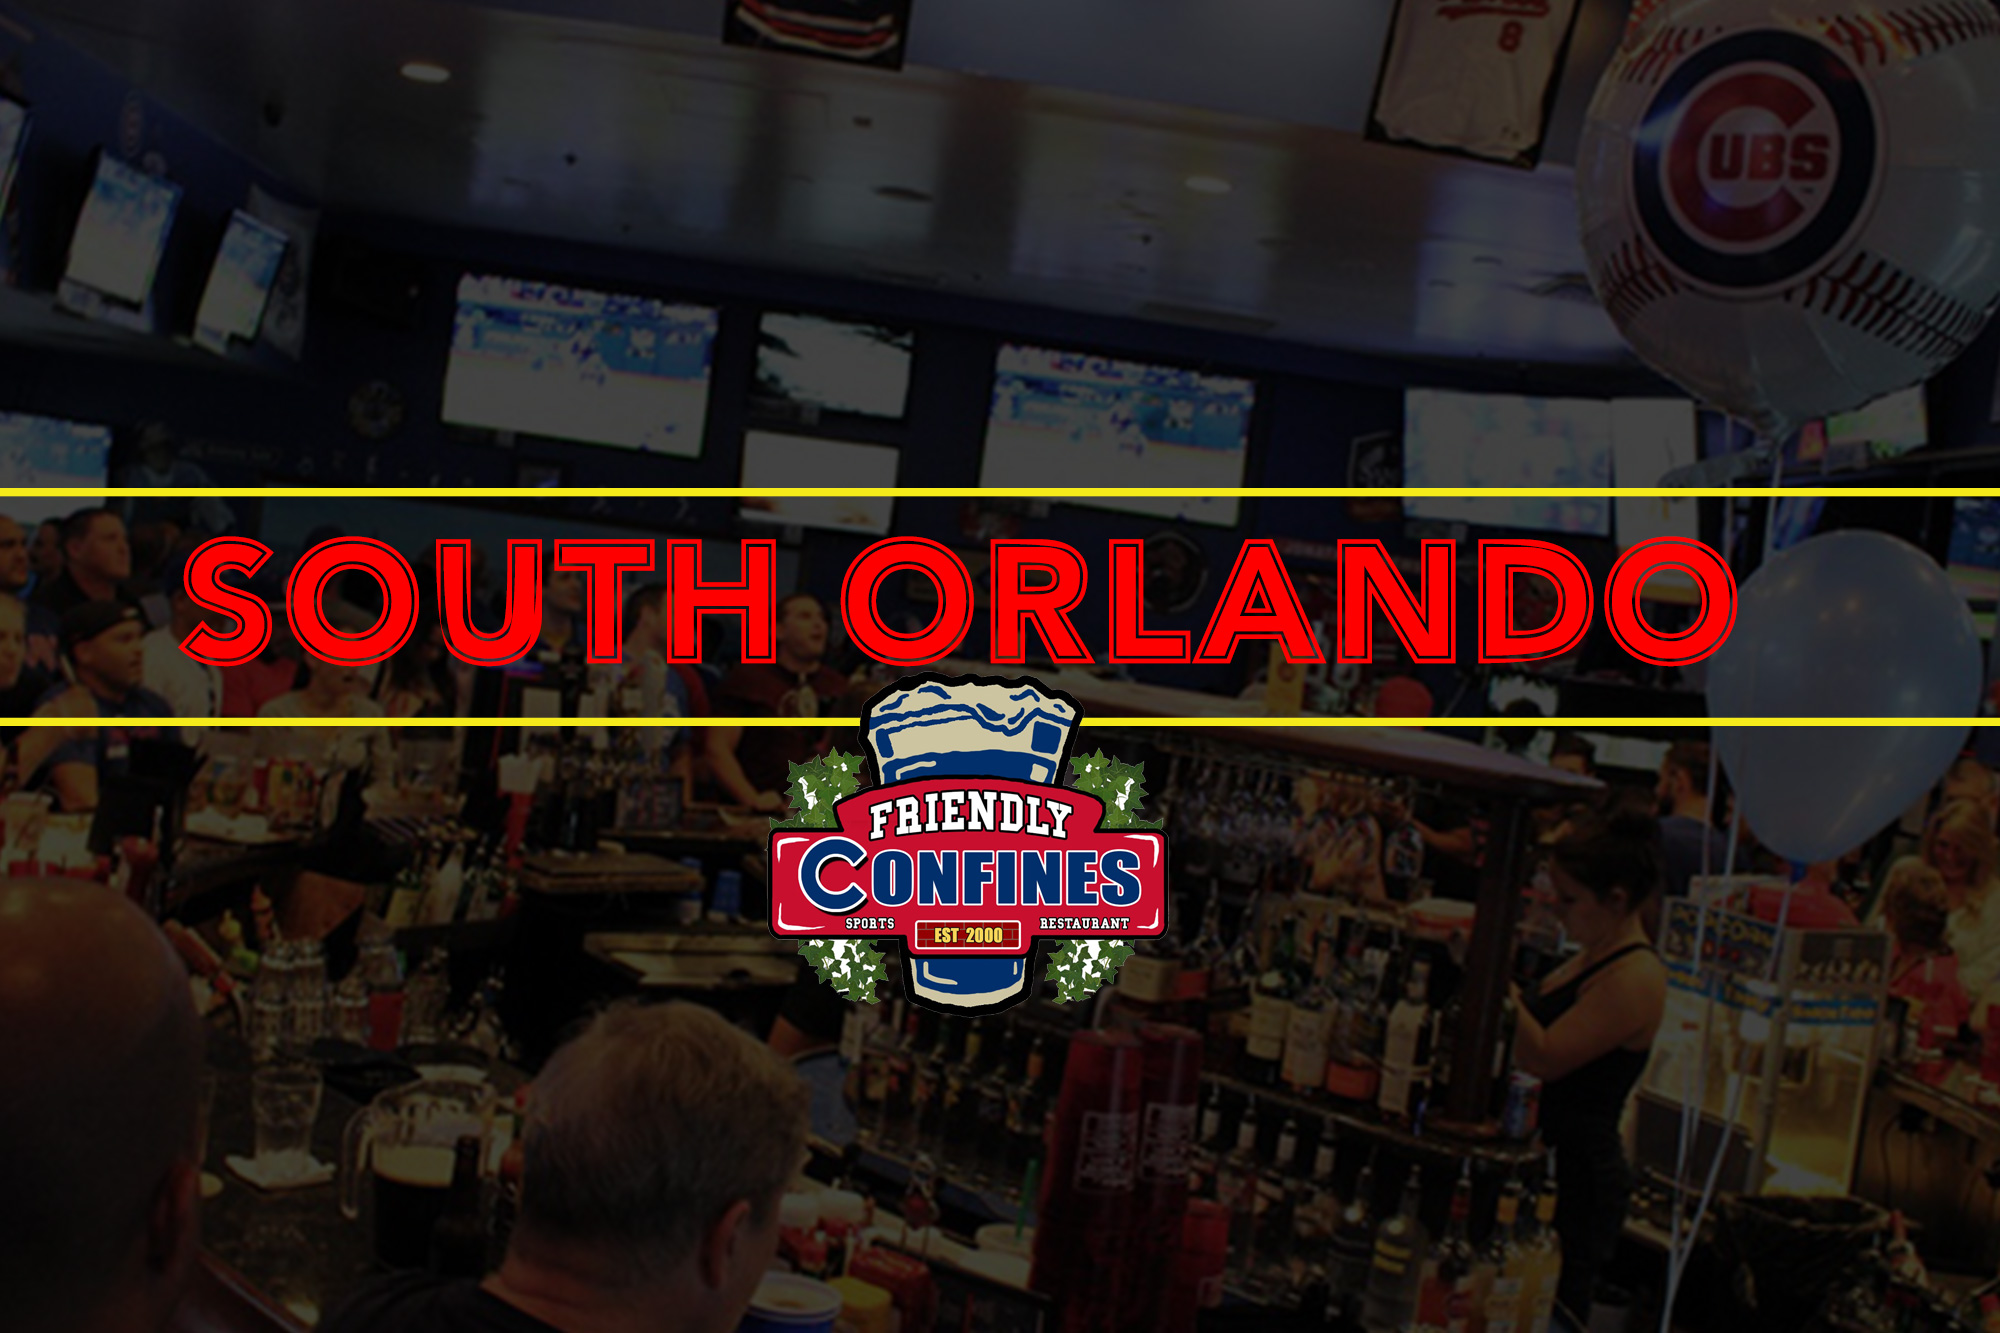 Friendly Confines Sports Restaurant and Bar South Orlando